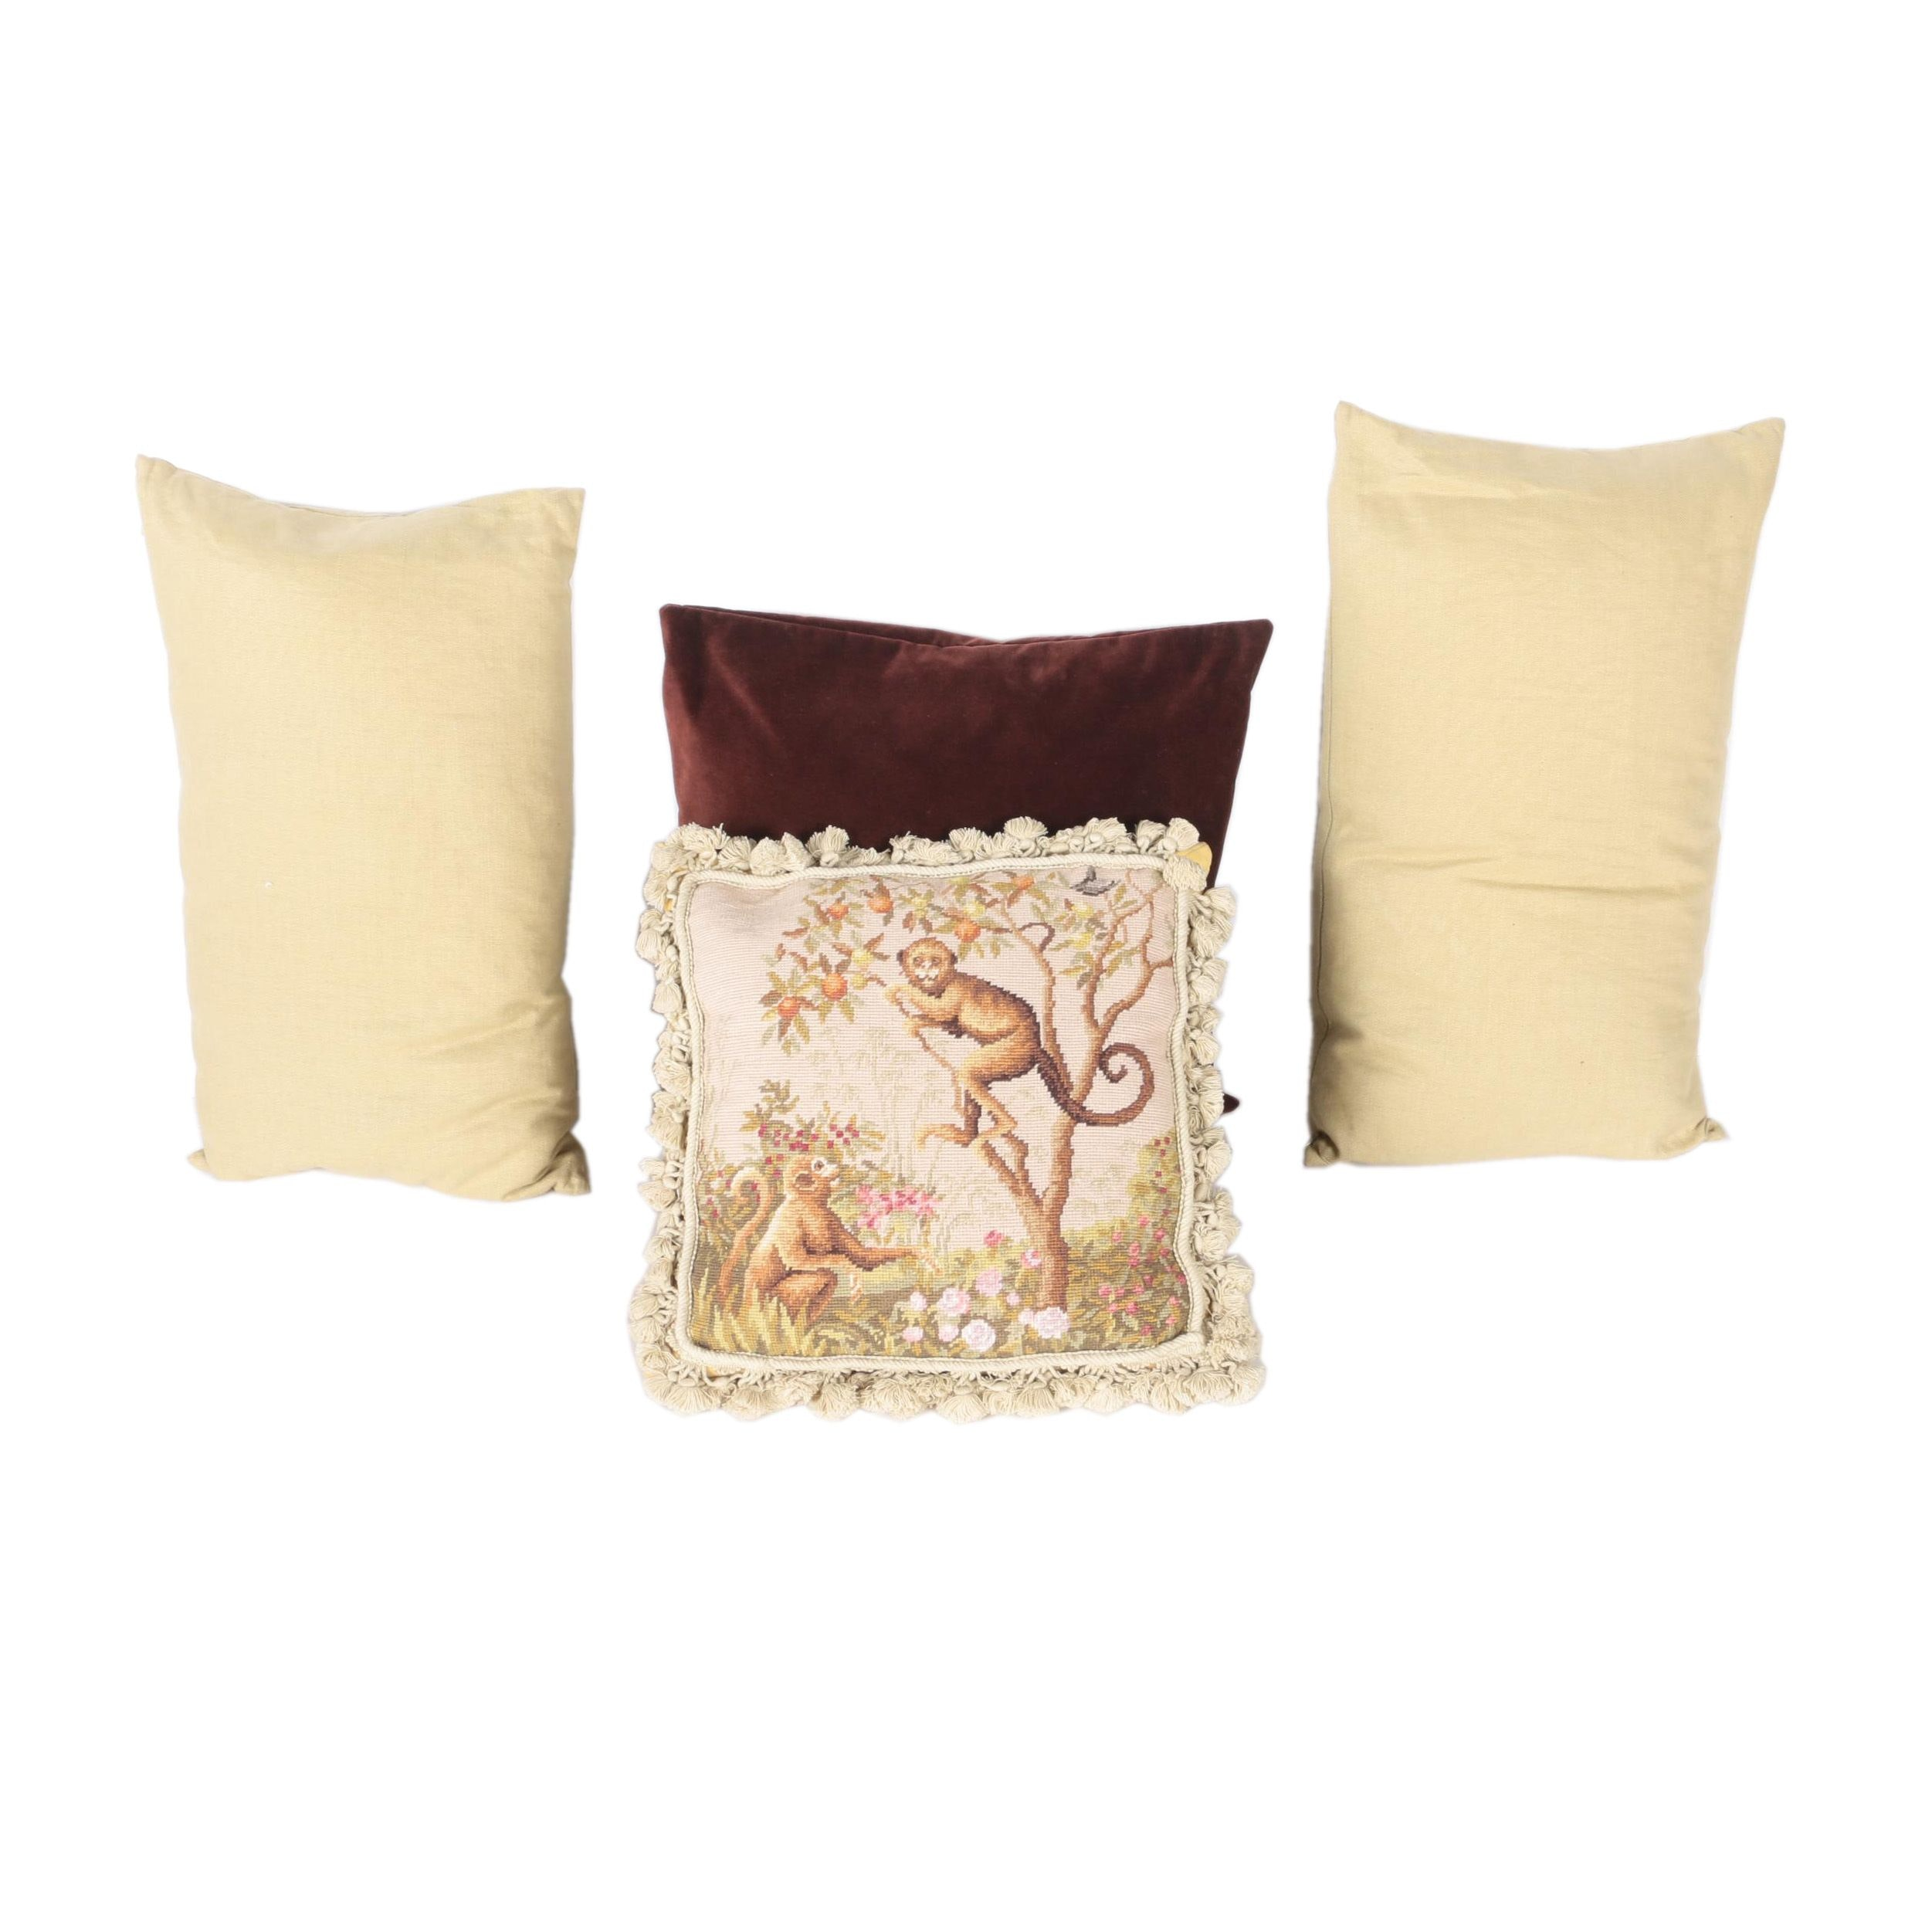 Decorative Needlepoint Pillow and Other Accent Pillows